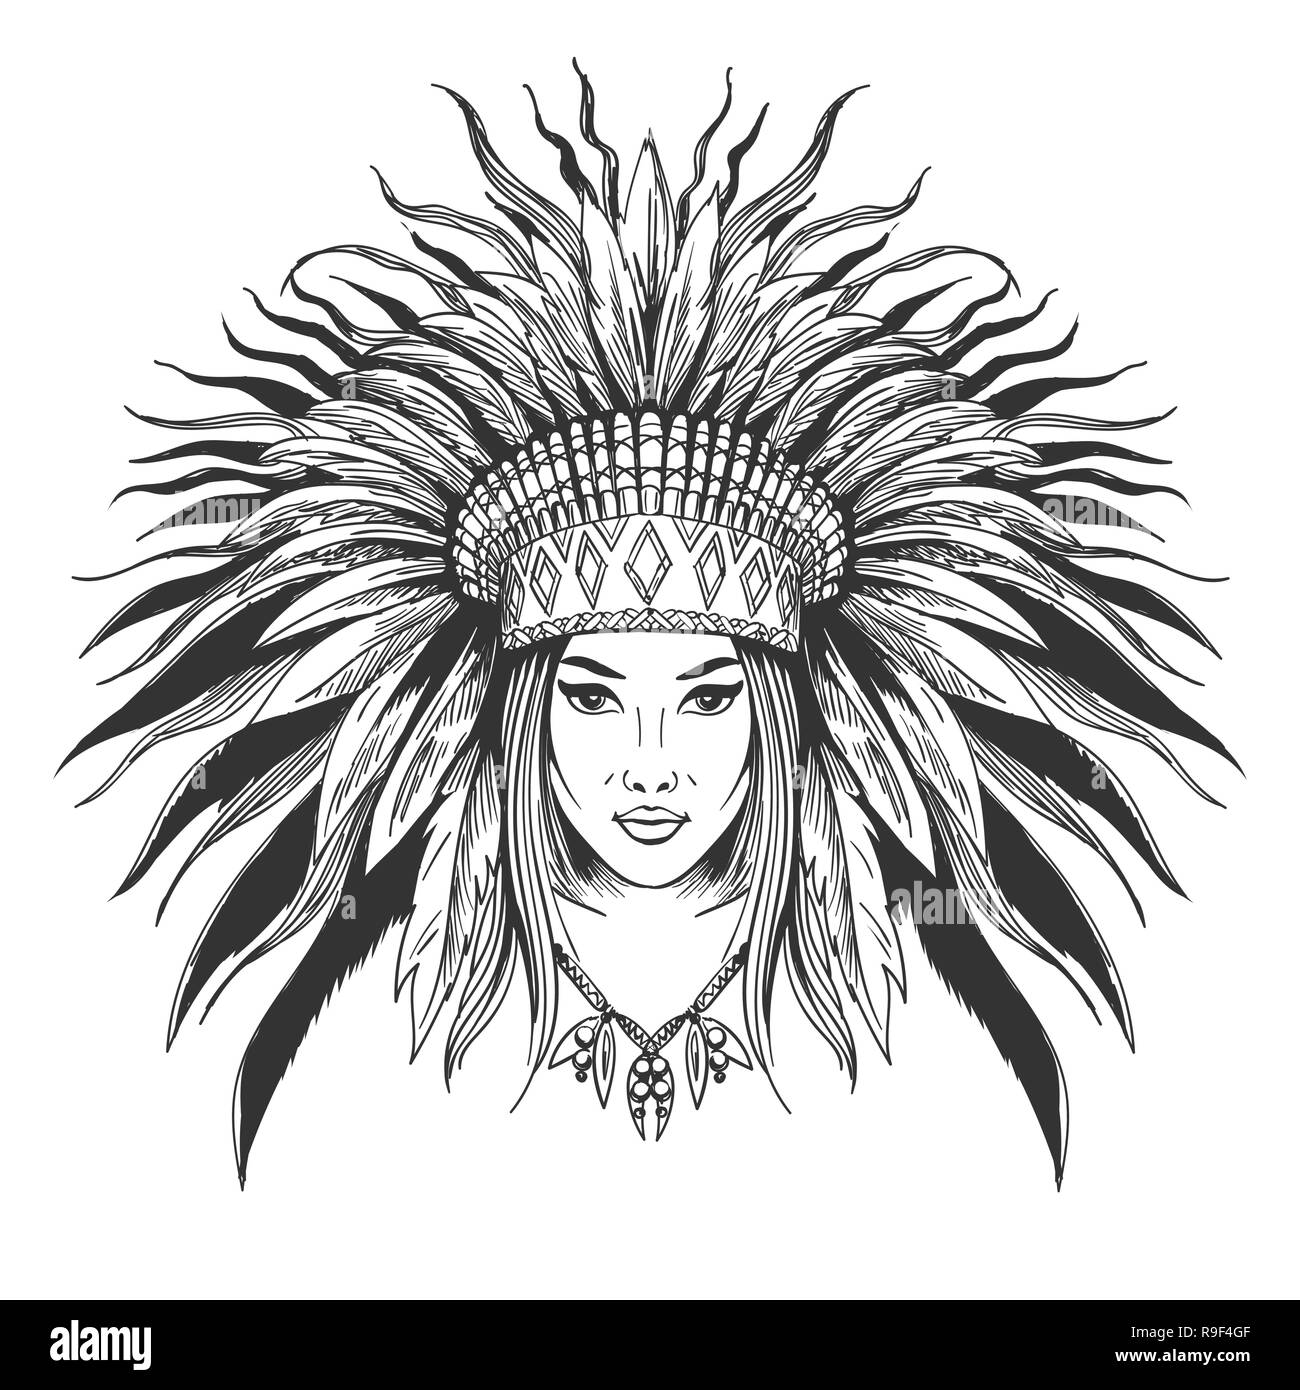 Hand drawn indian girl in feathers war bonnet. Vector illustration. - Stock Image